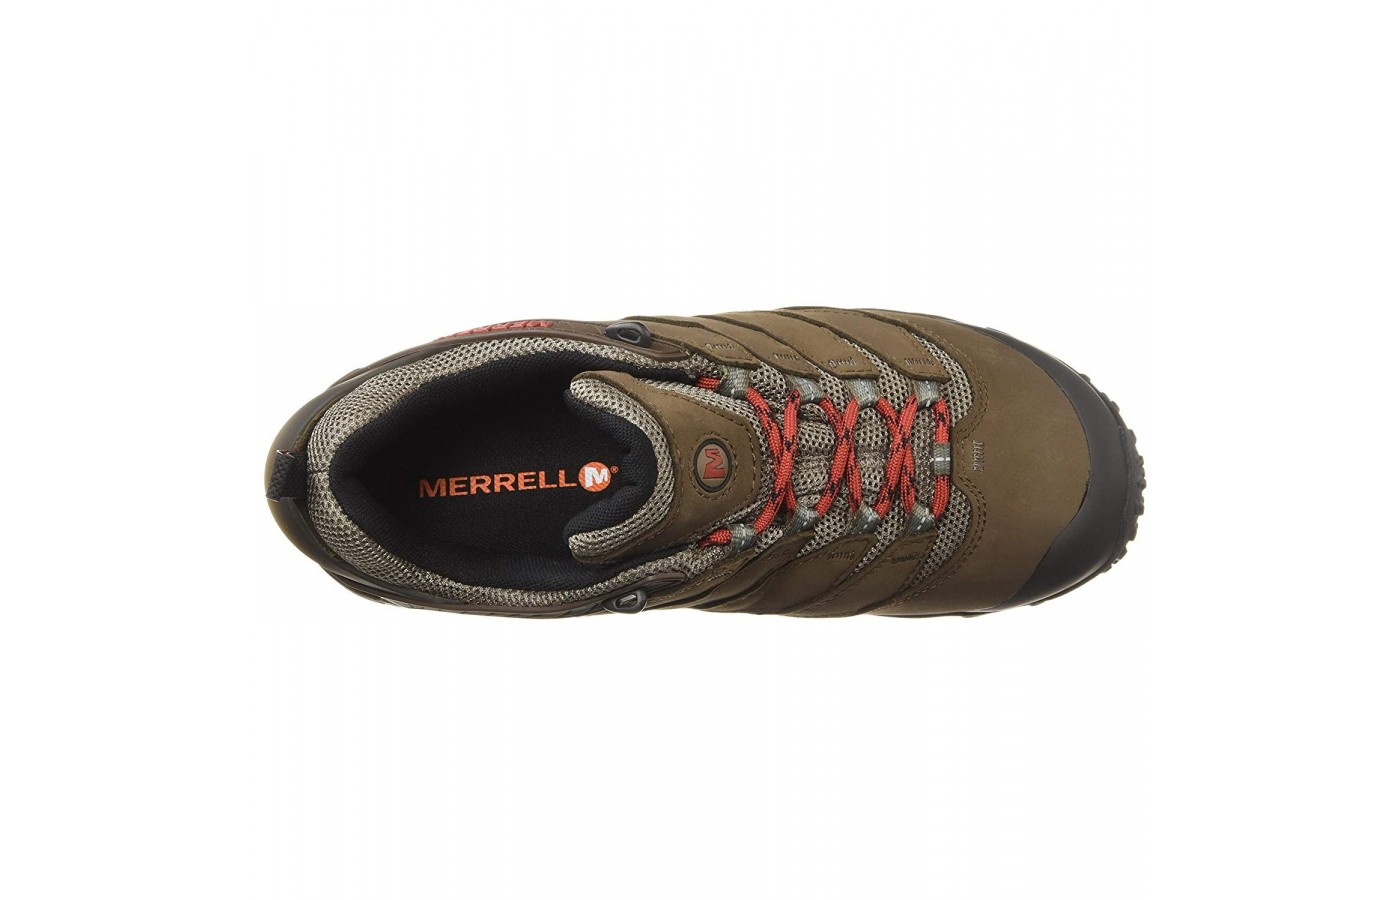 The Merrell Chameleon offers a protective toe cap for protection of the toes.